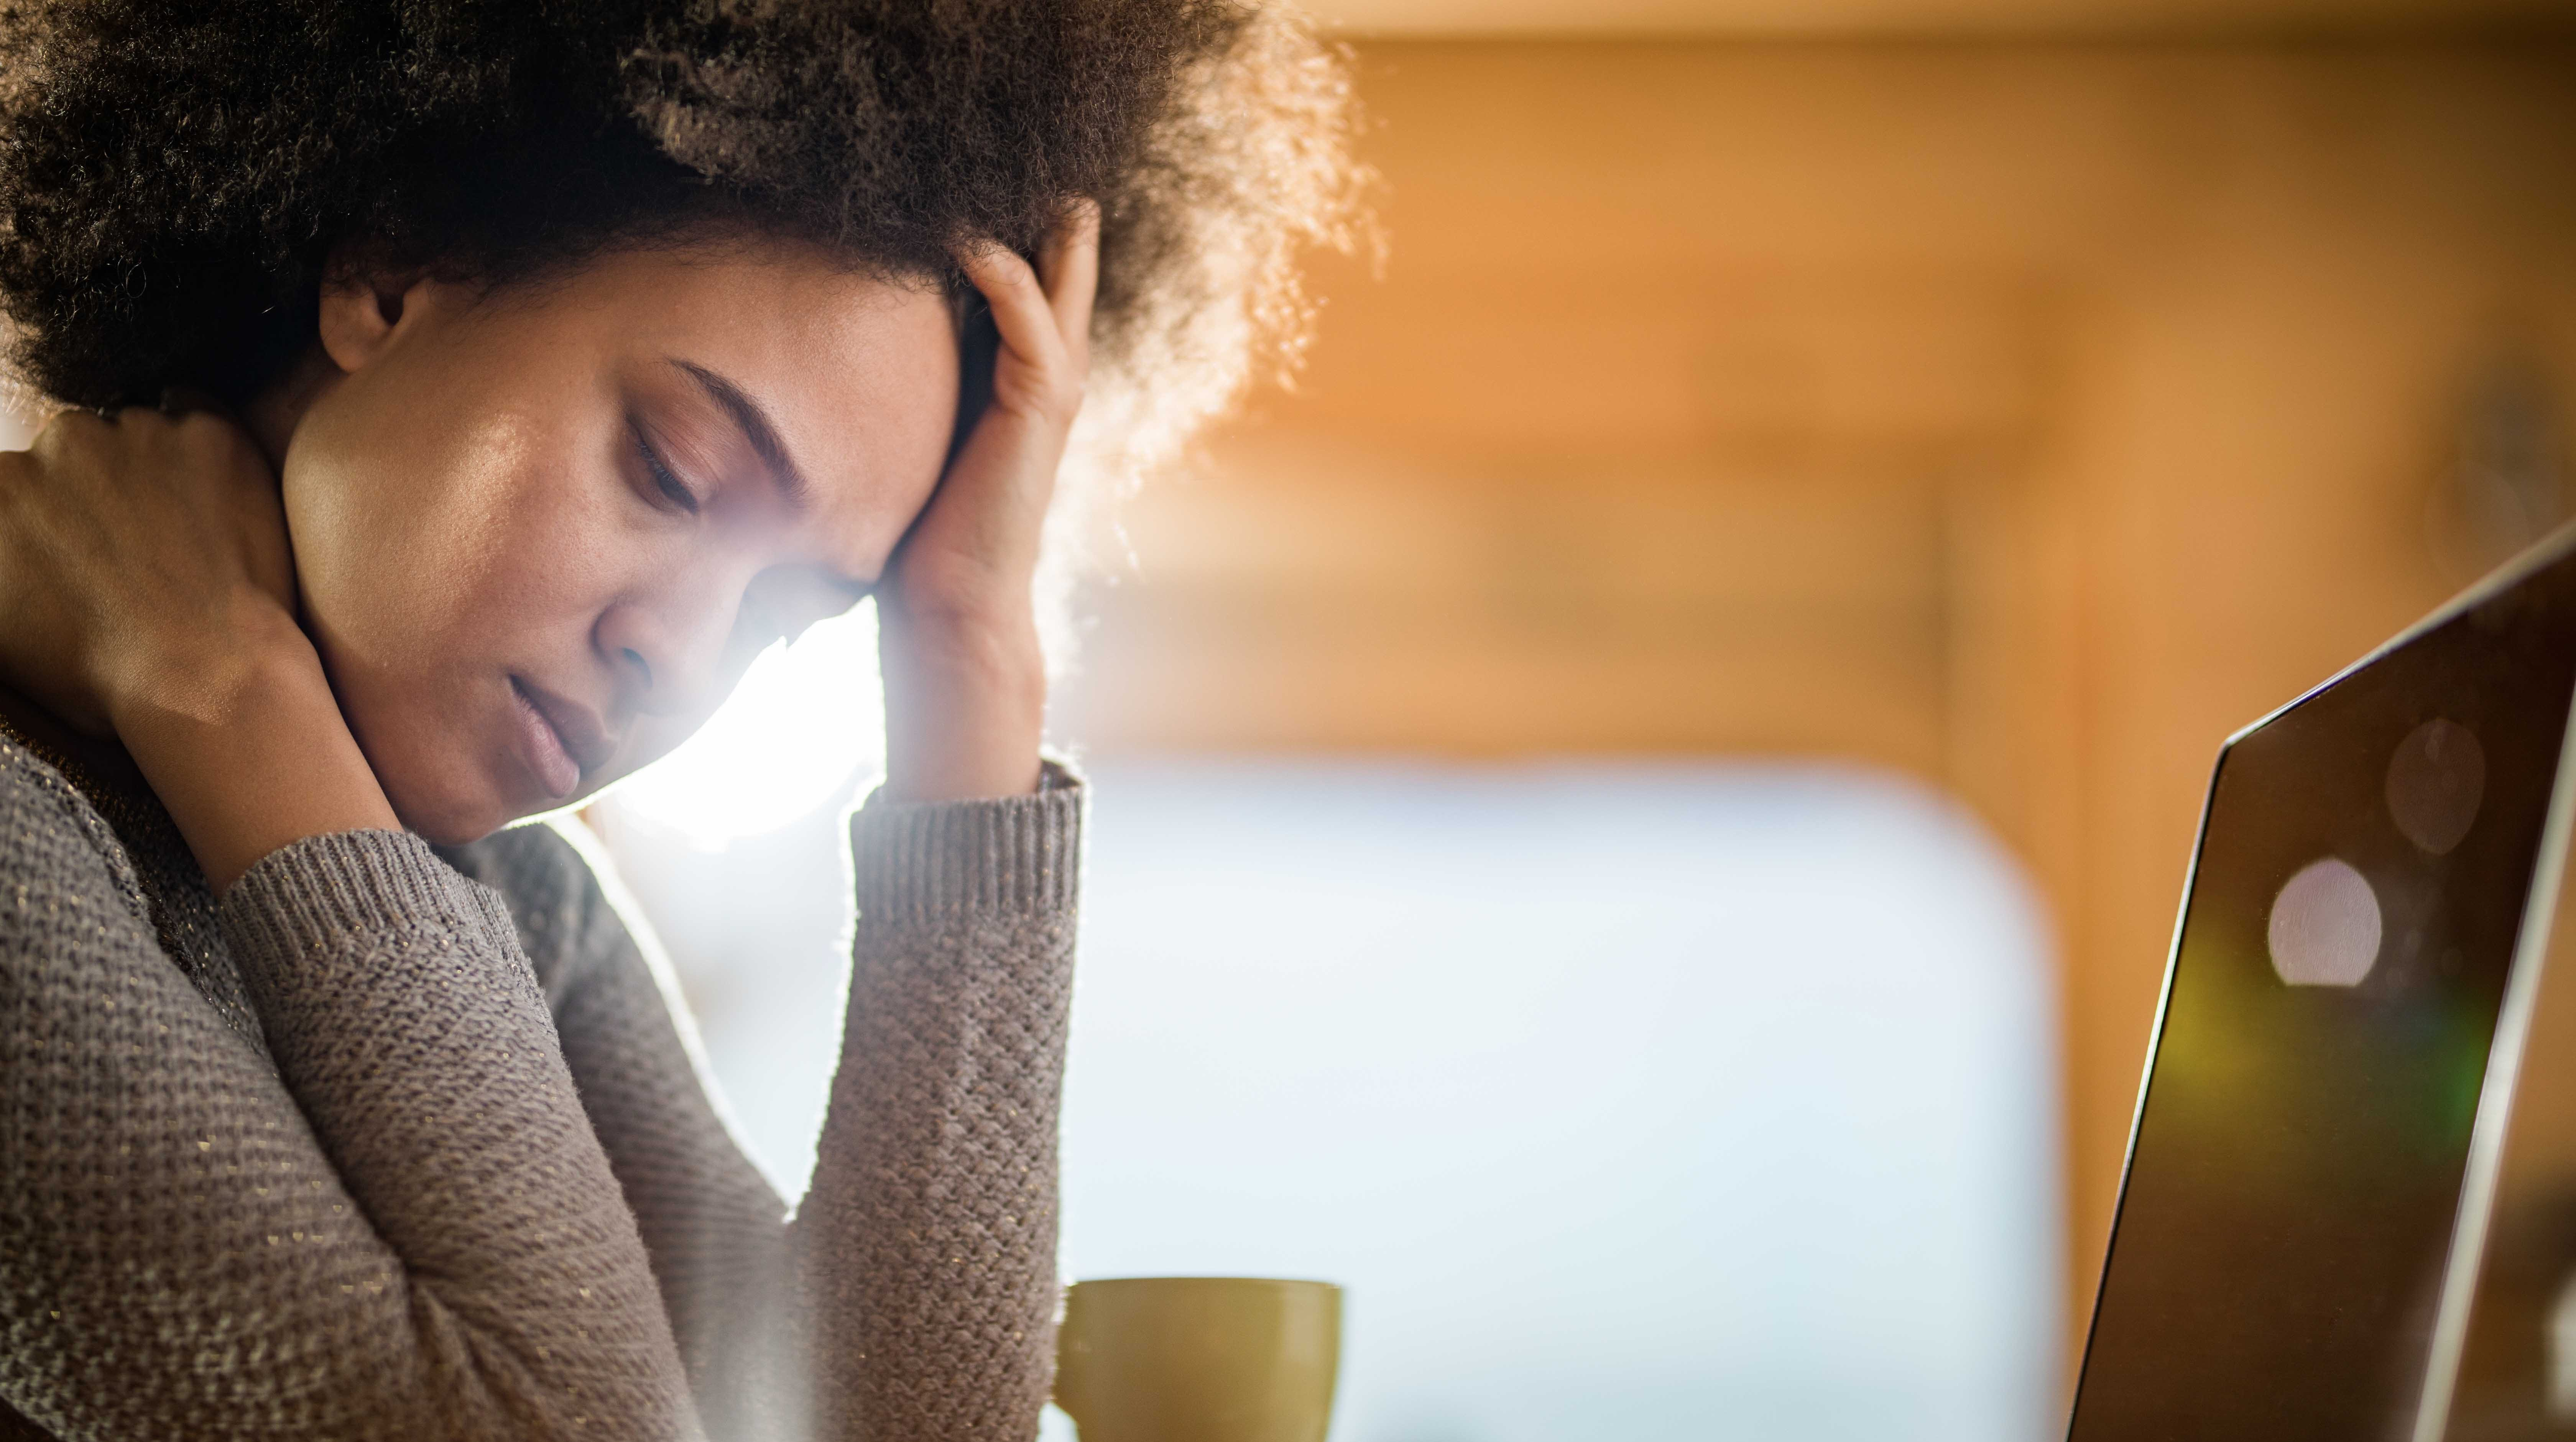 Depression can strike anyone, but women are twice as likely as men to be clinically depressed.